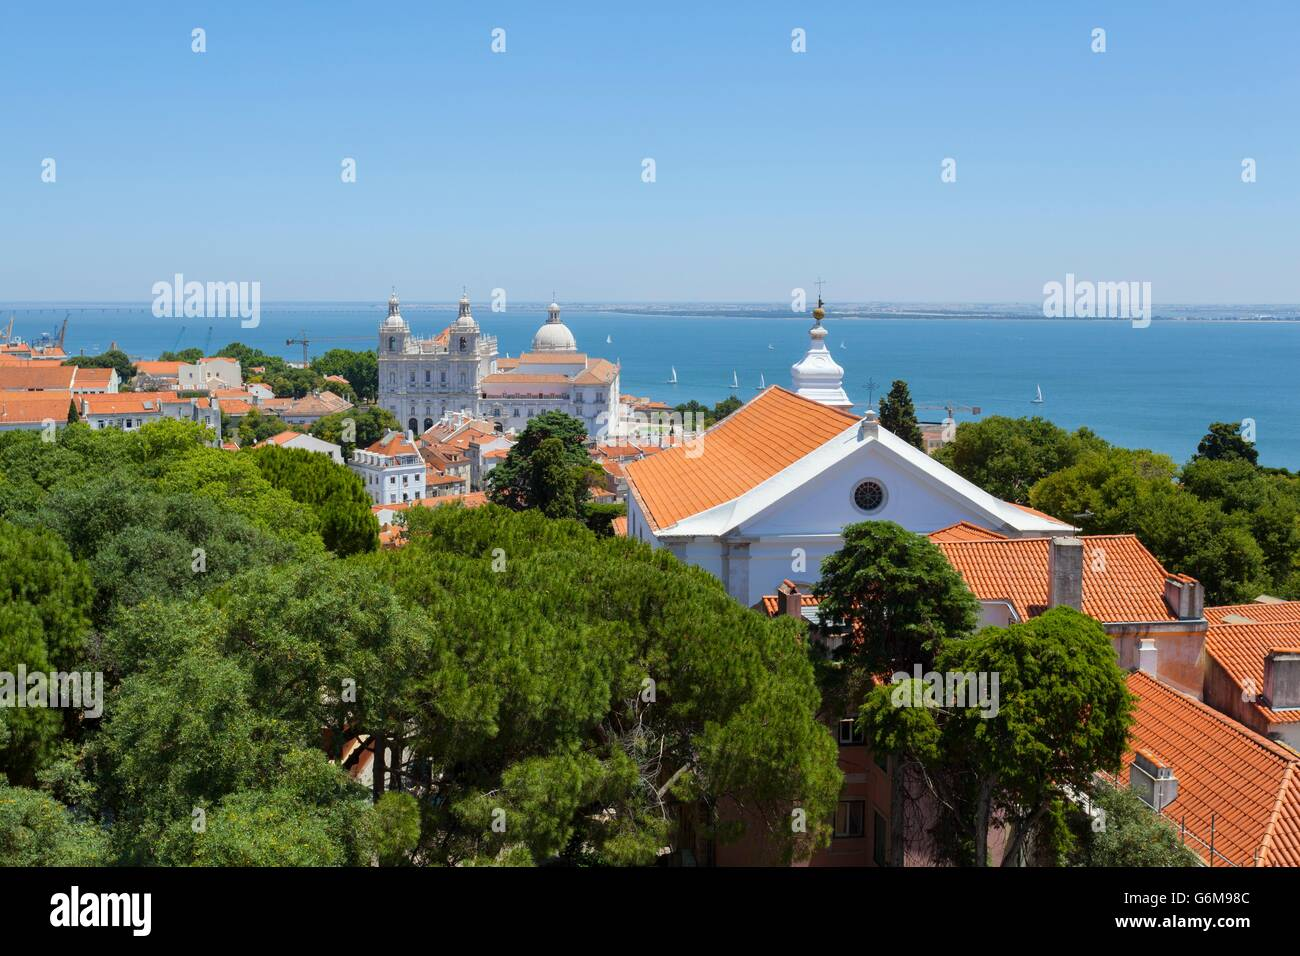 View over the Alfama district and the Tagus river shot from the Castelo de Sao Jorge - Stock Image